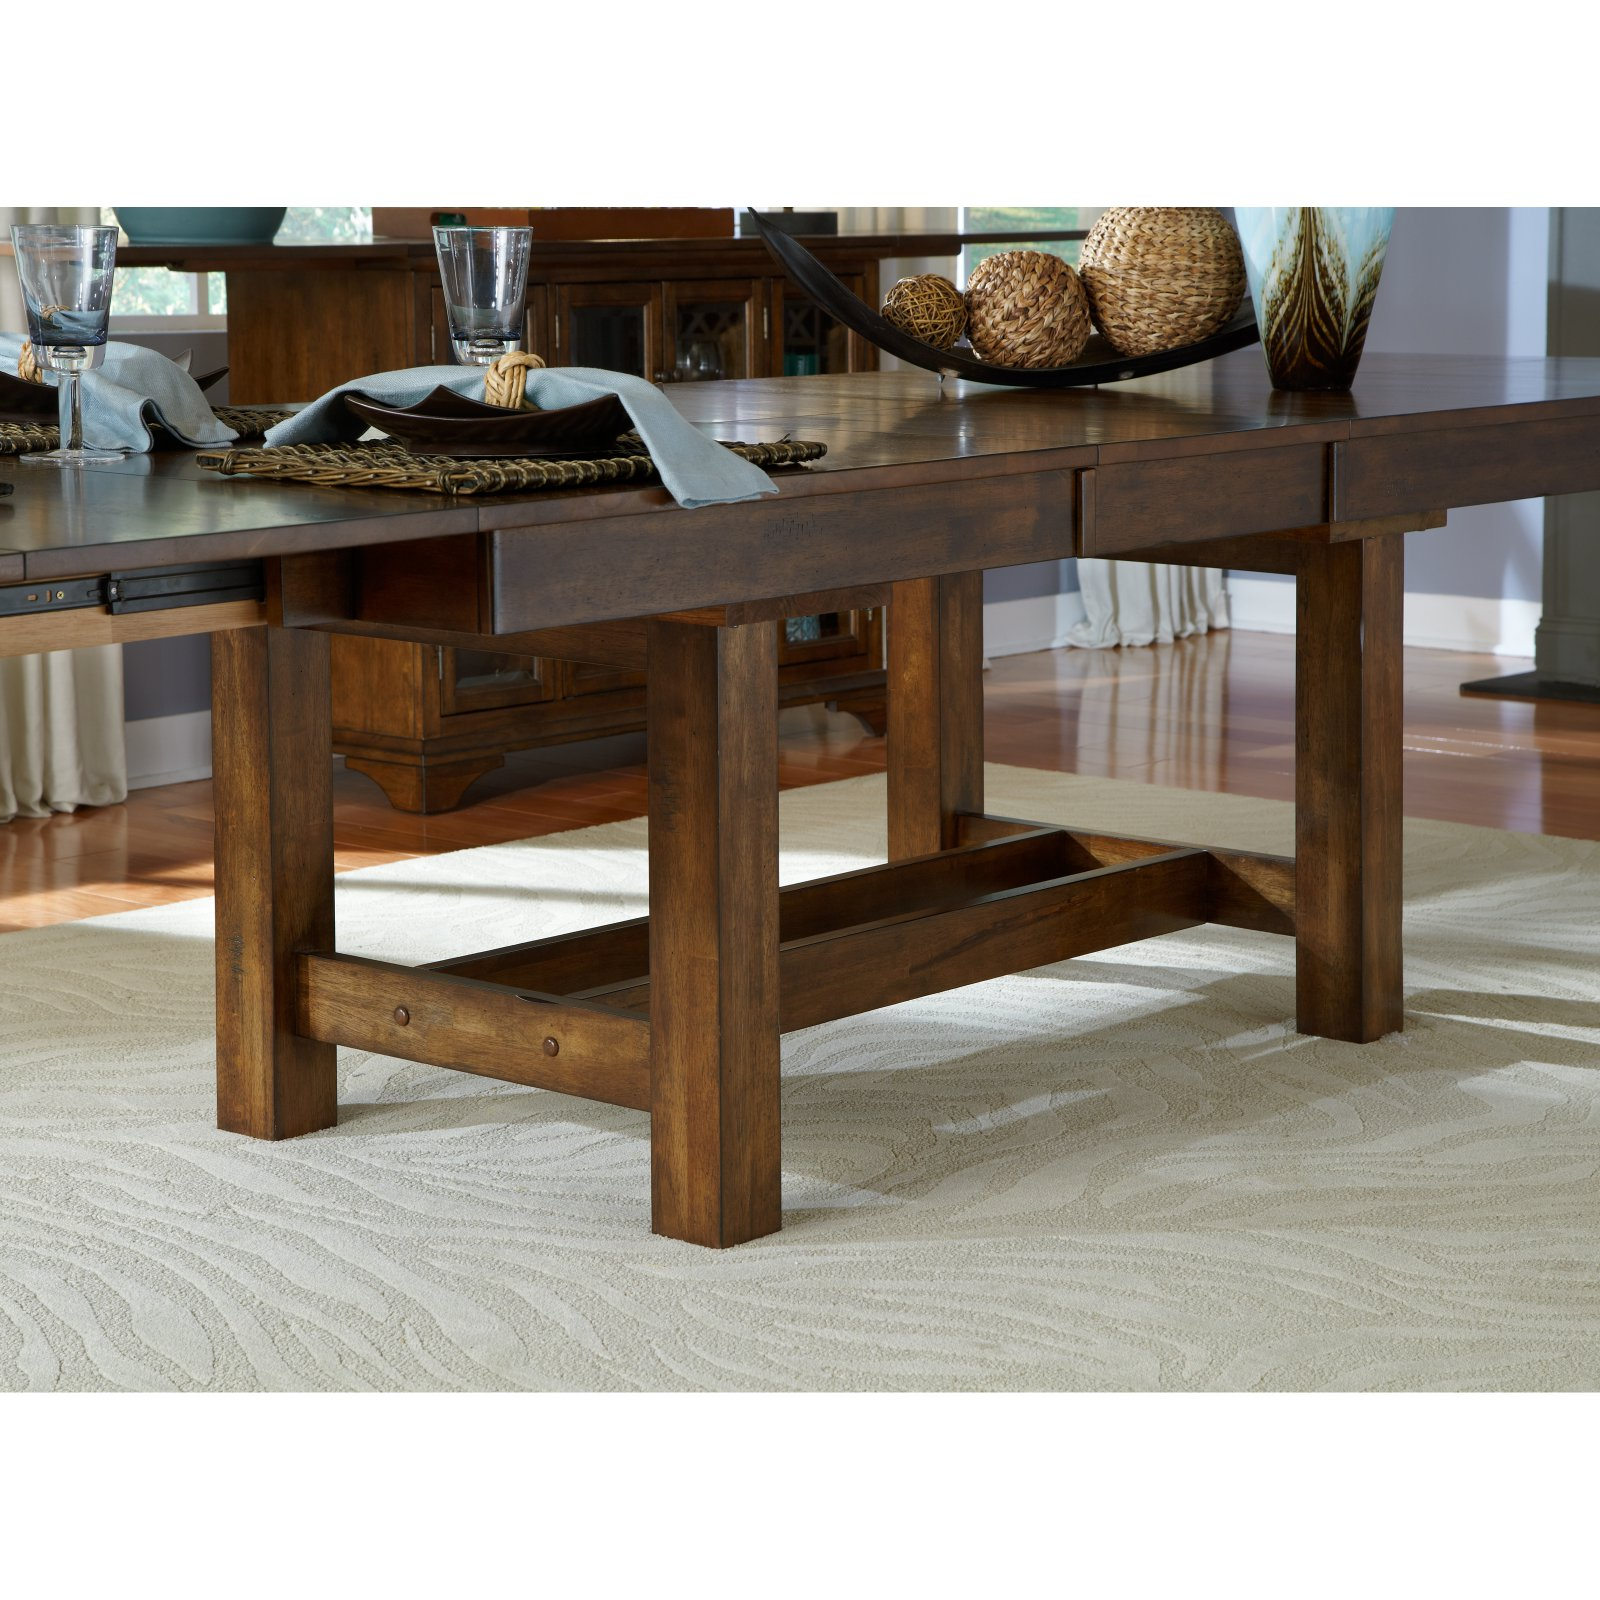 A-America Mariposa Rectangular Trestle Dining Table - Rustic Whiskey